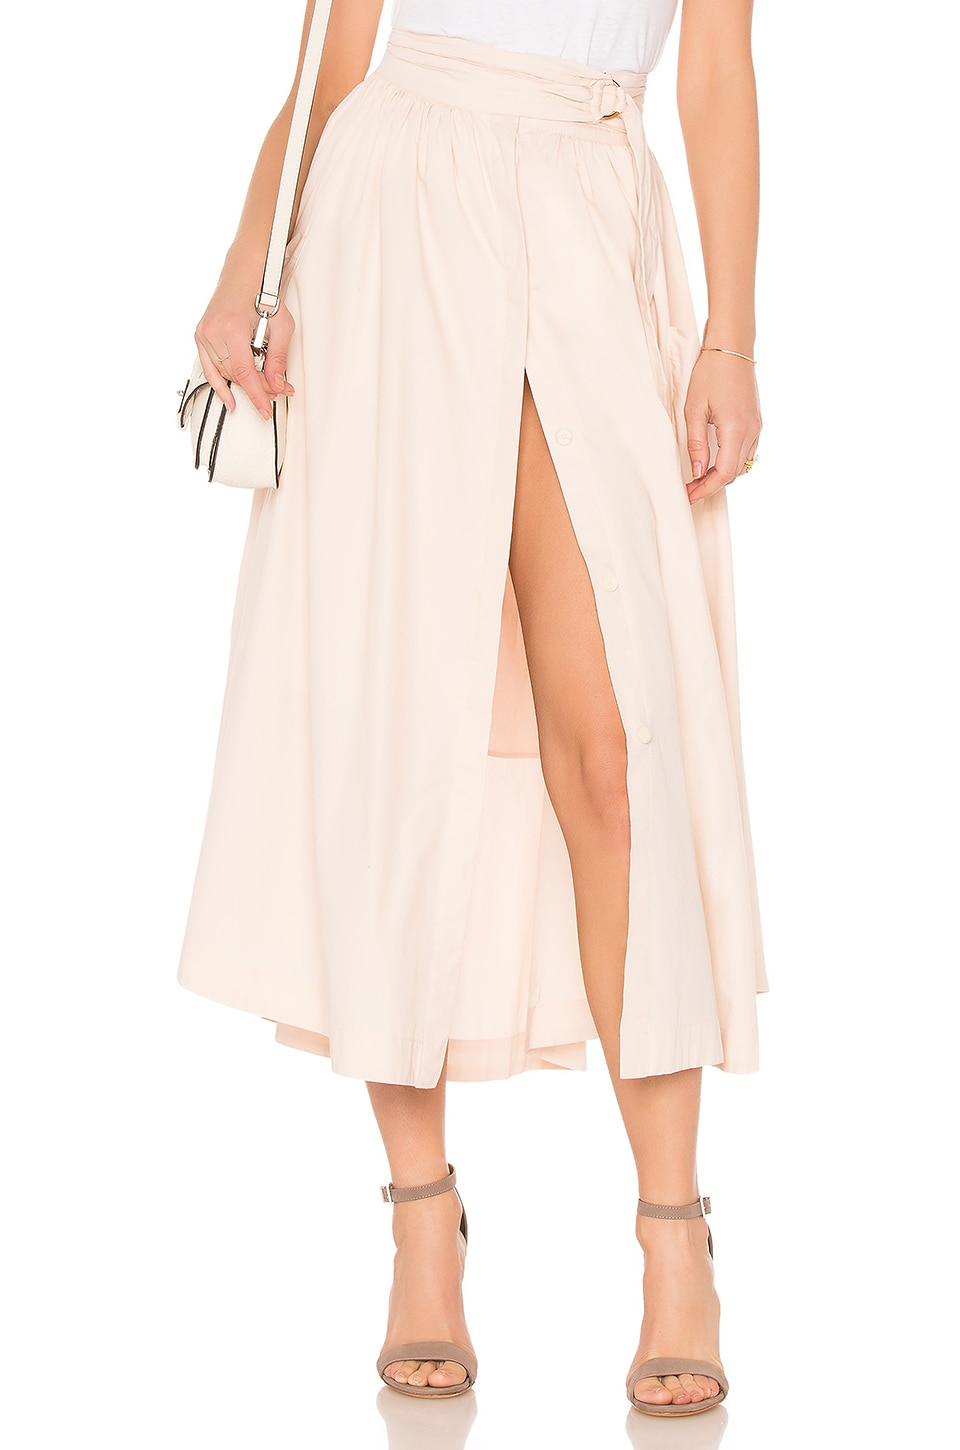 a246a24088 Free People Dream of Me Midi Skirt in Taupe